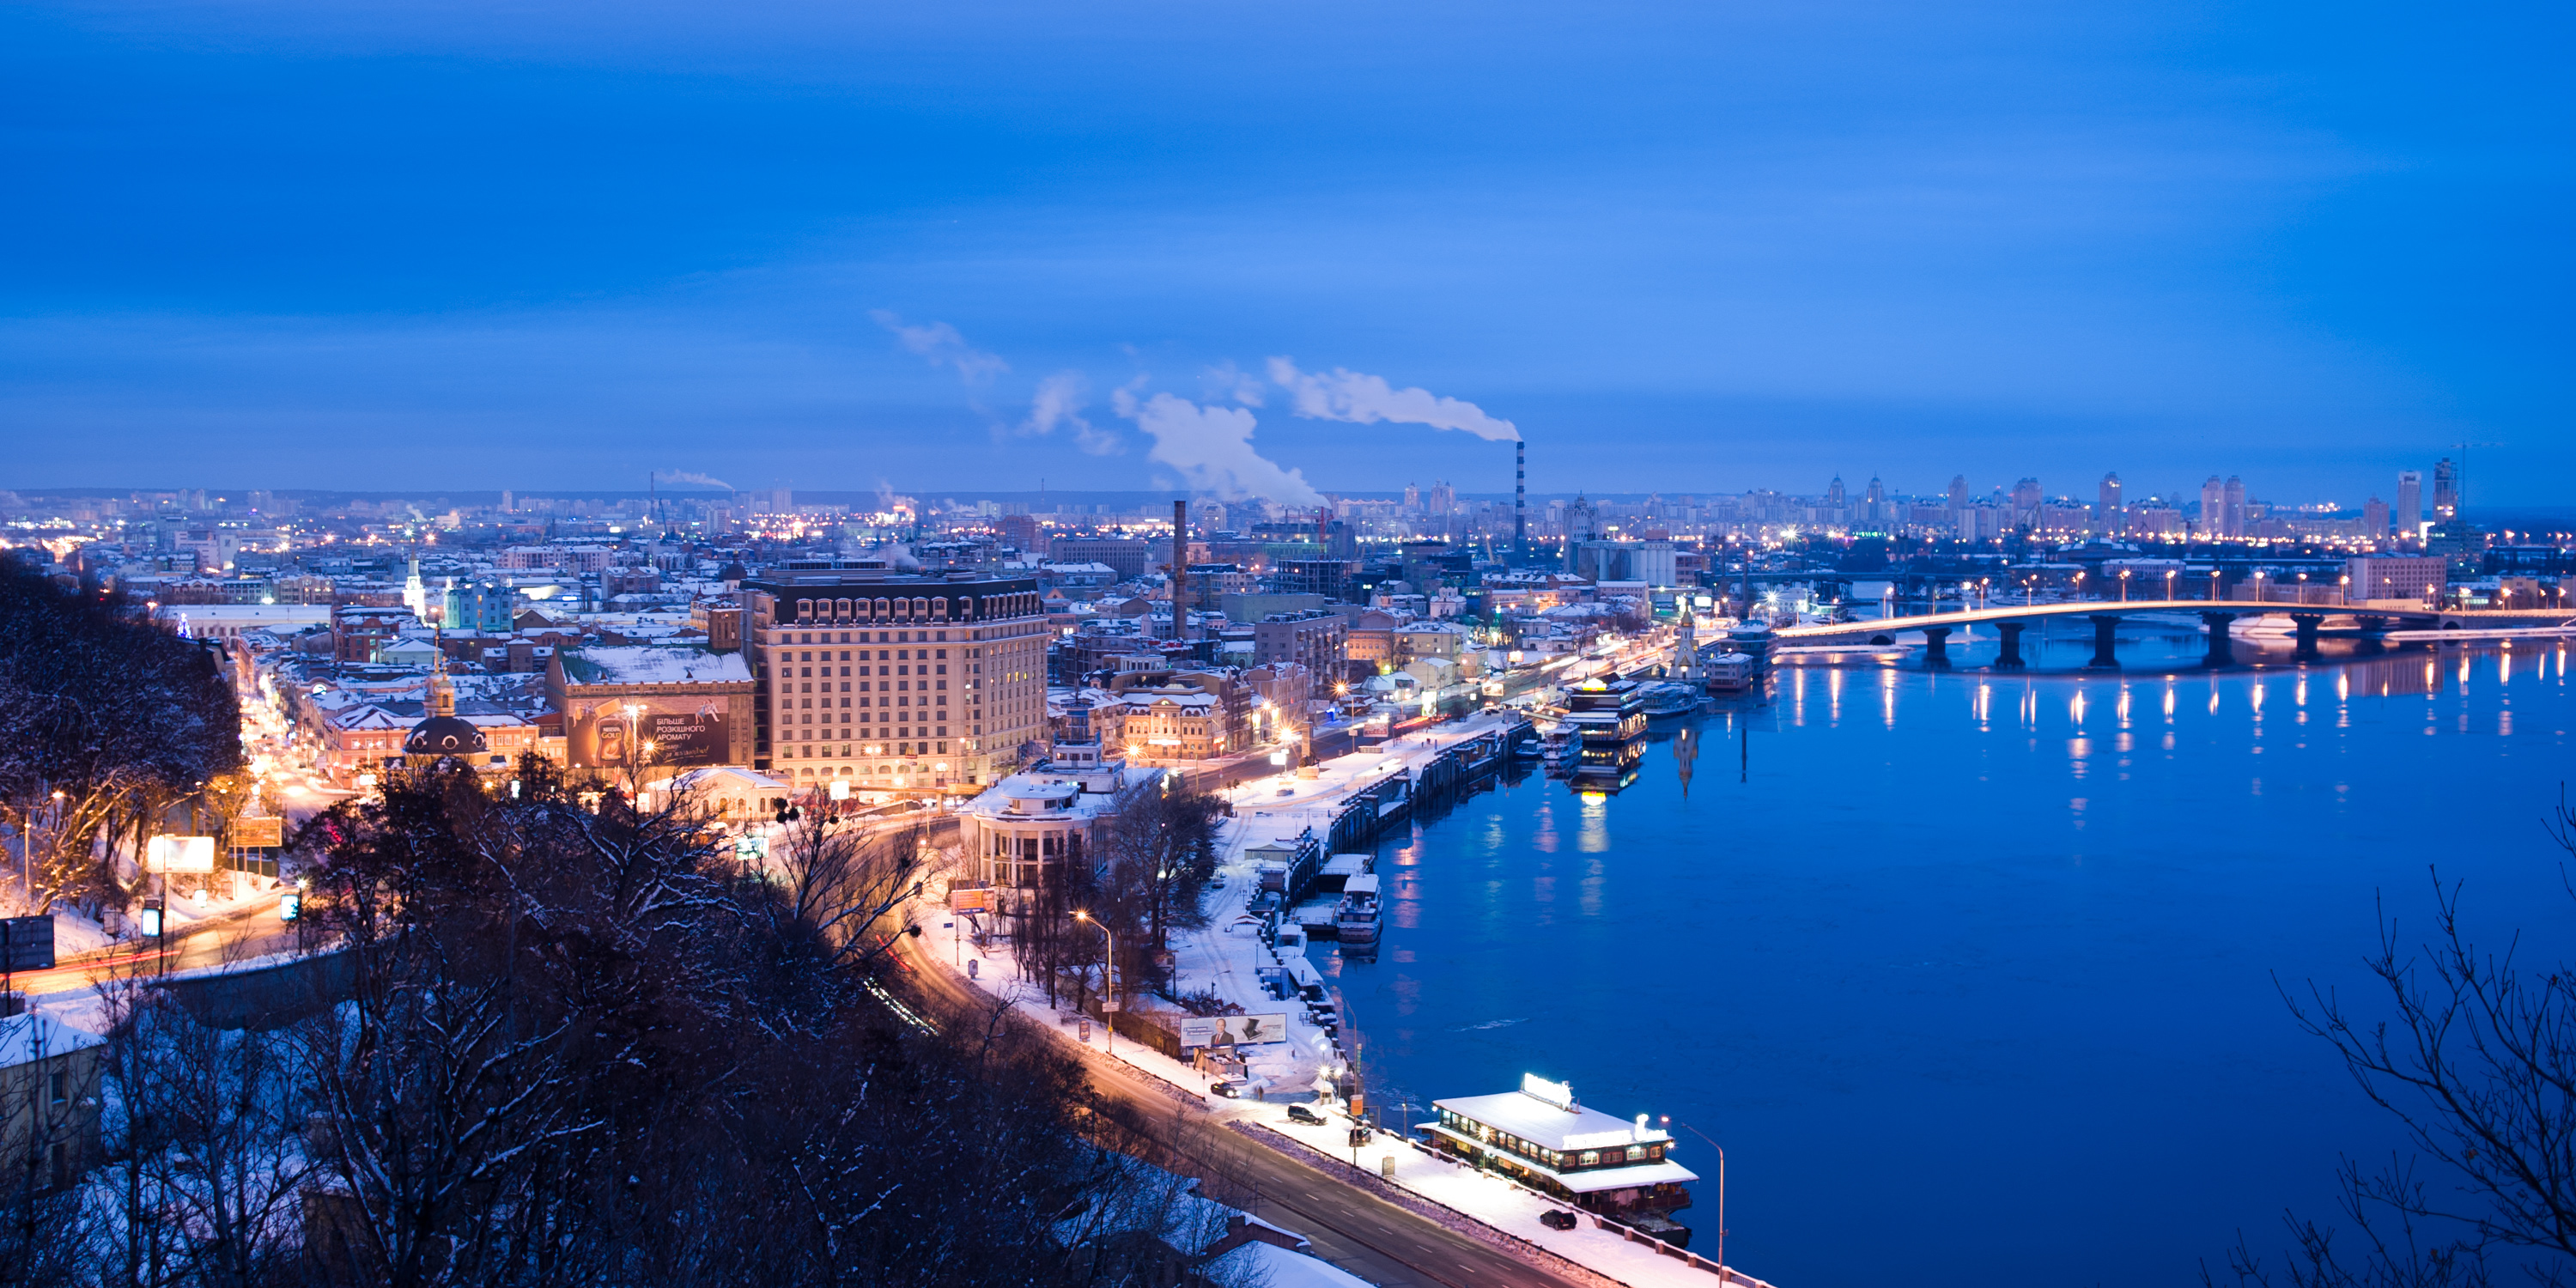 Panoramic_view_of_the_Dnieper_River_right_bank._Kiev,_Ukraine,_Eastern_Europe